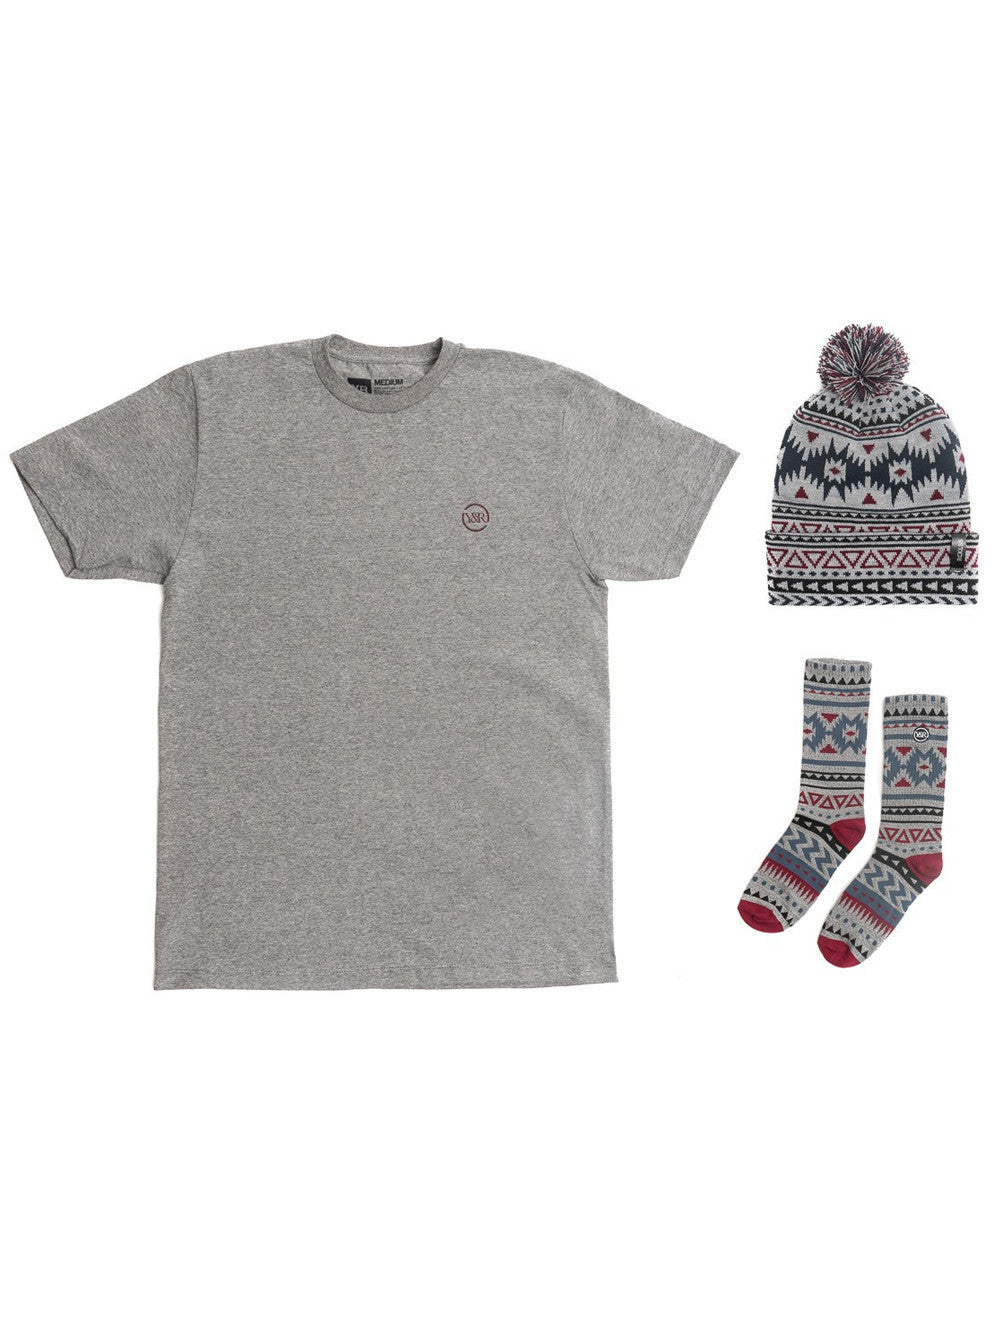 Young and Reckless Mens - Tees - Graphic Tee Native Bundle - Grey